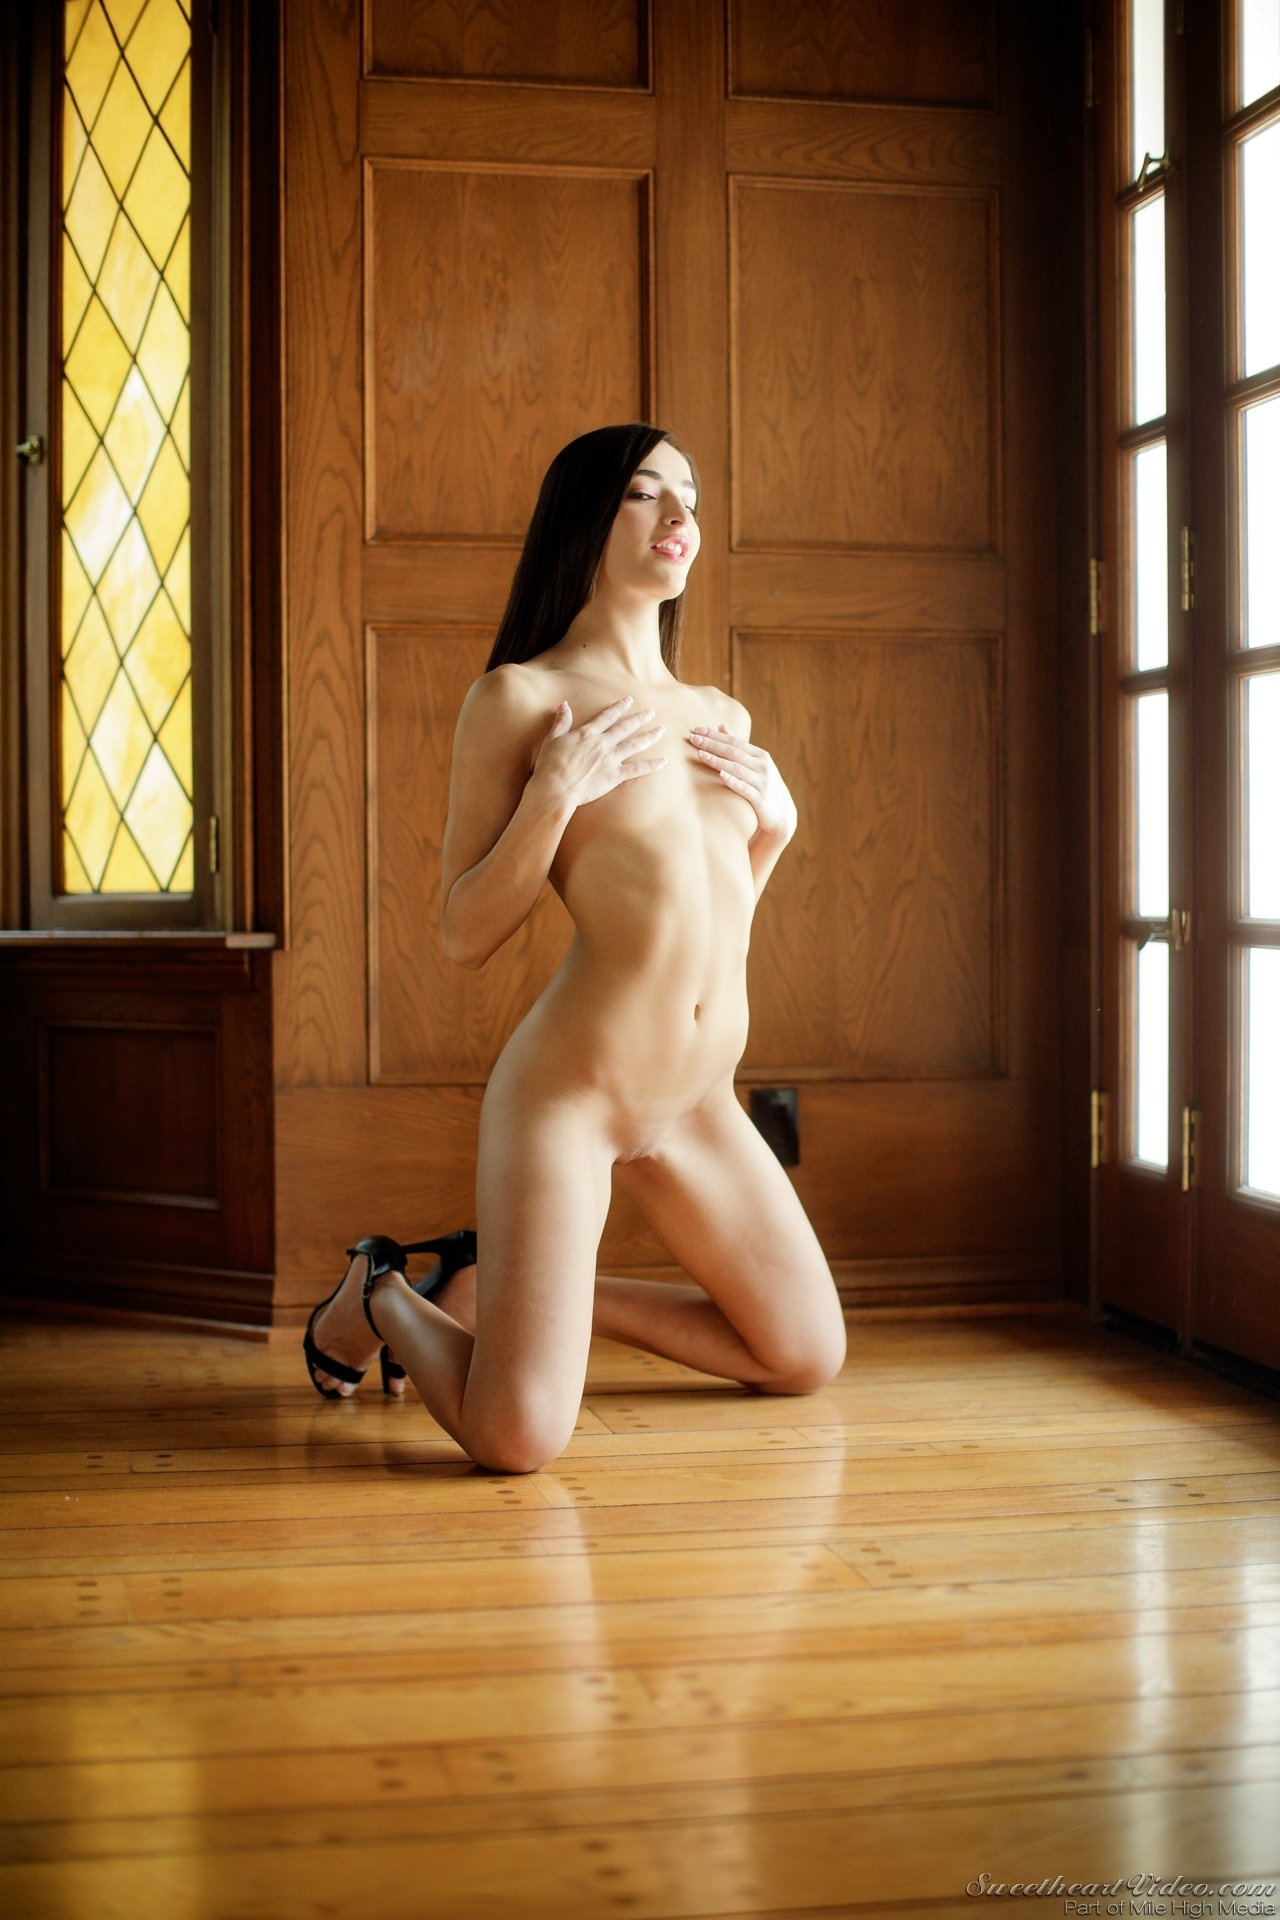 Nude mom picture galleries